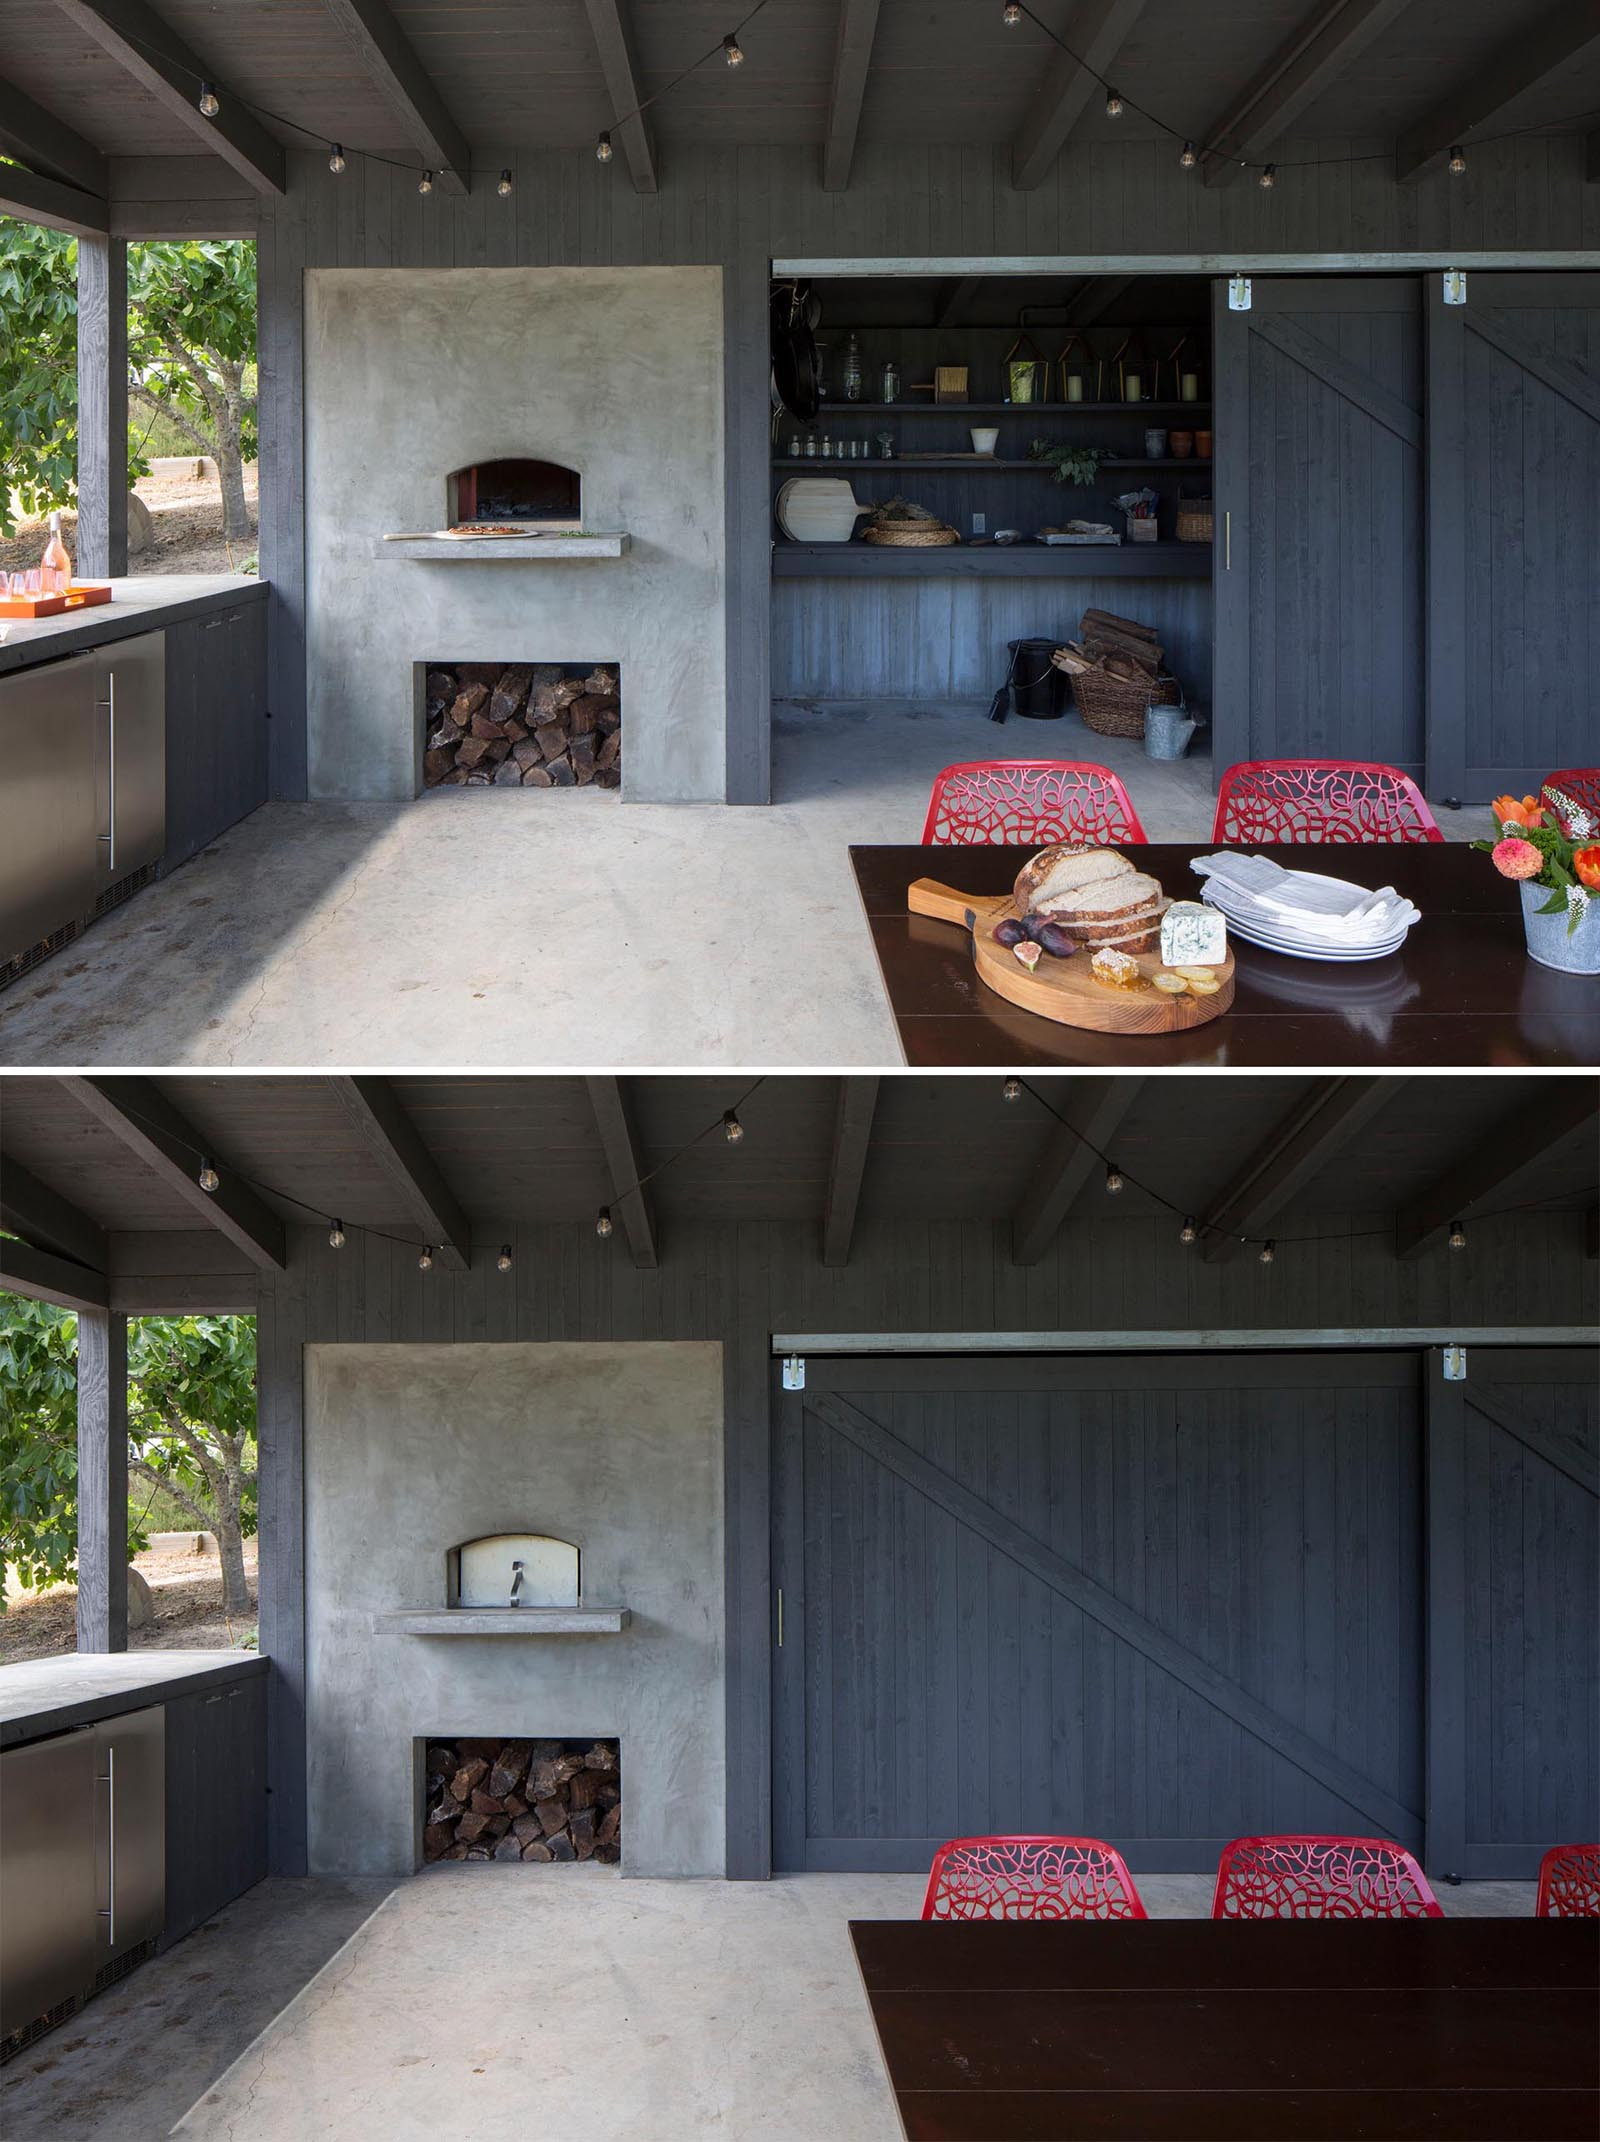 An outdoor pavilion includes dining area, a kitchen area with fridges, a pizza oven and firewood storage, as well as a separate space for storing garden items. This small room can be hidden from view by the large sliding barn doors.